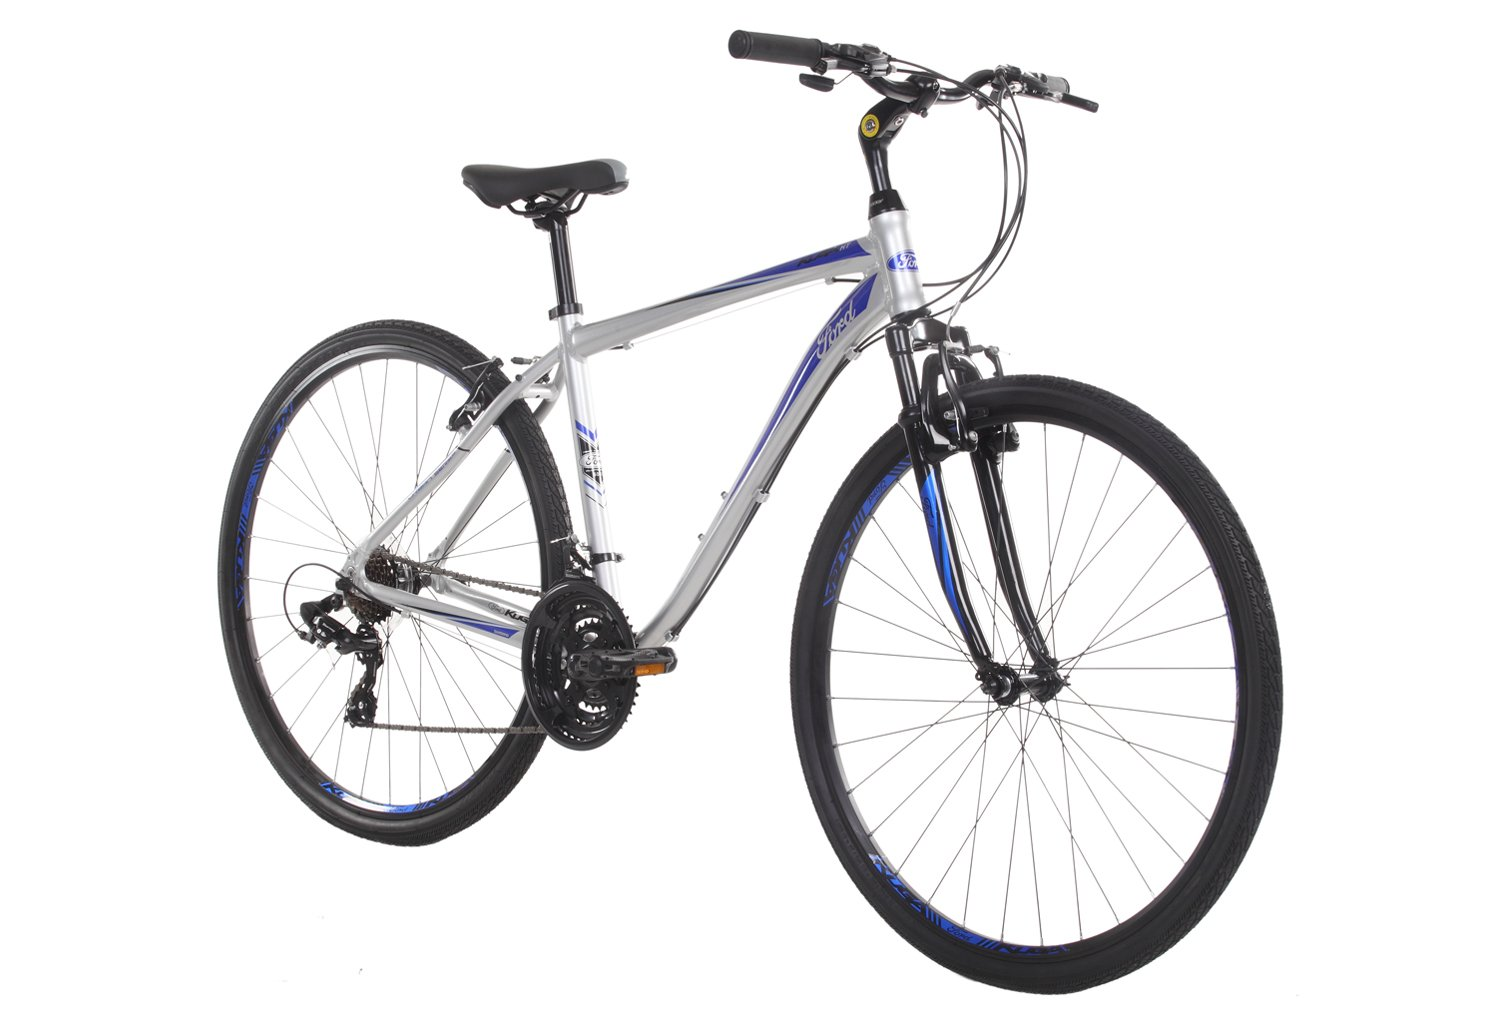 71XtuNtPqhL - Ford Men's Kuga Ht Hybrid Bicycle